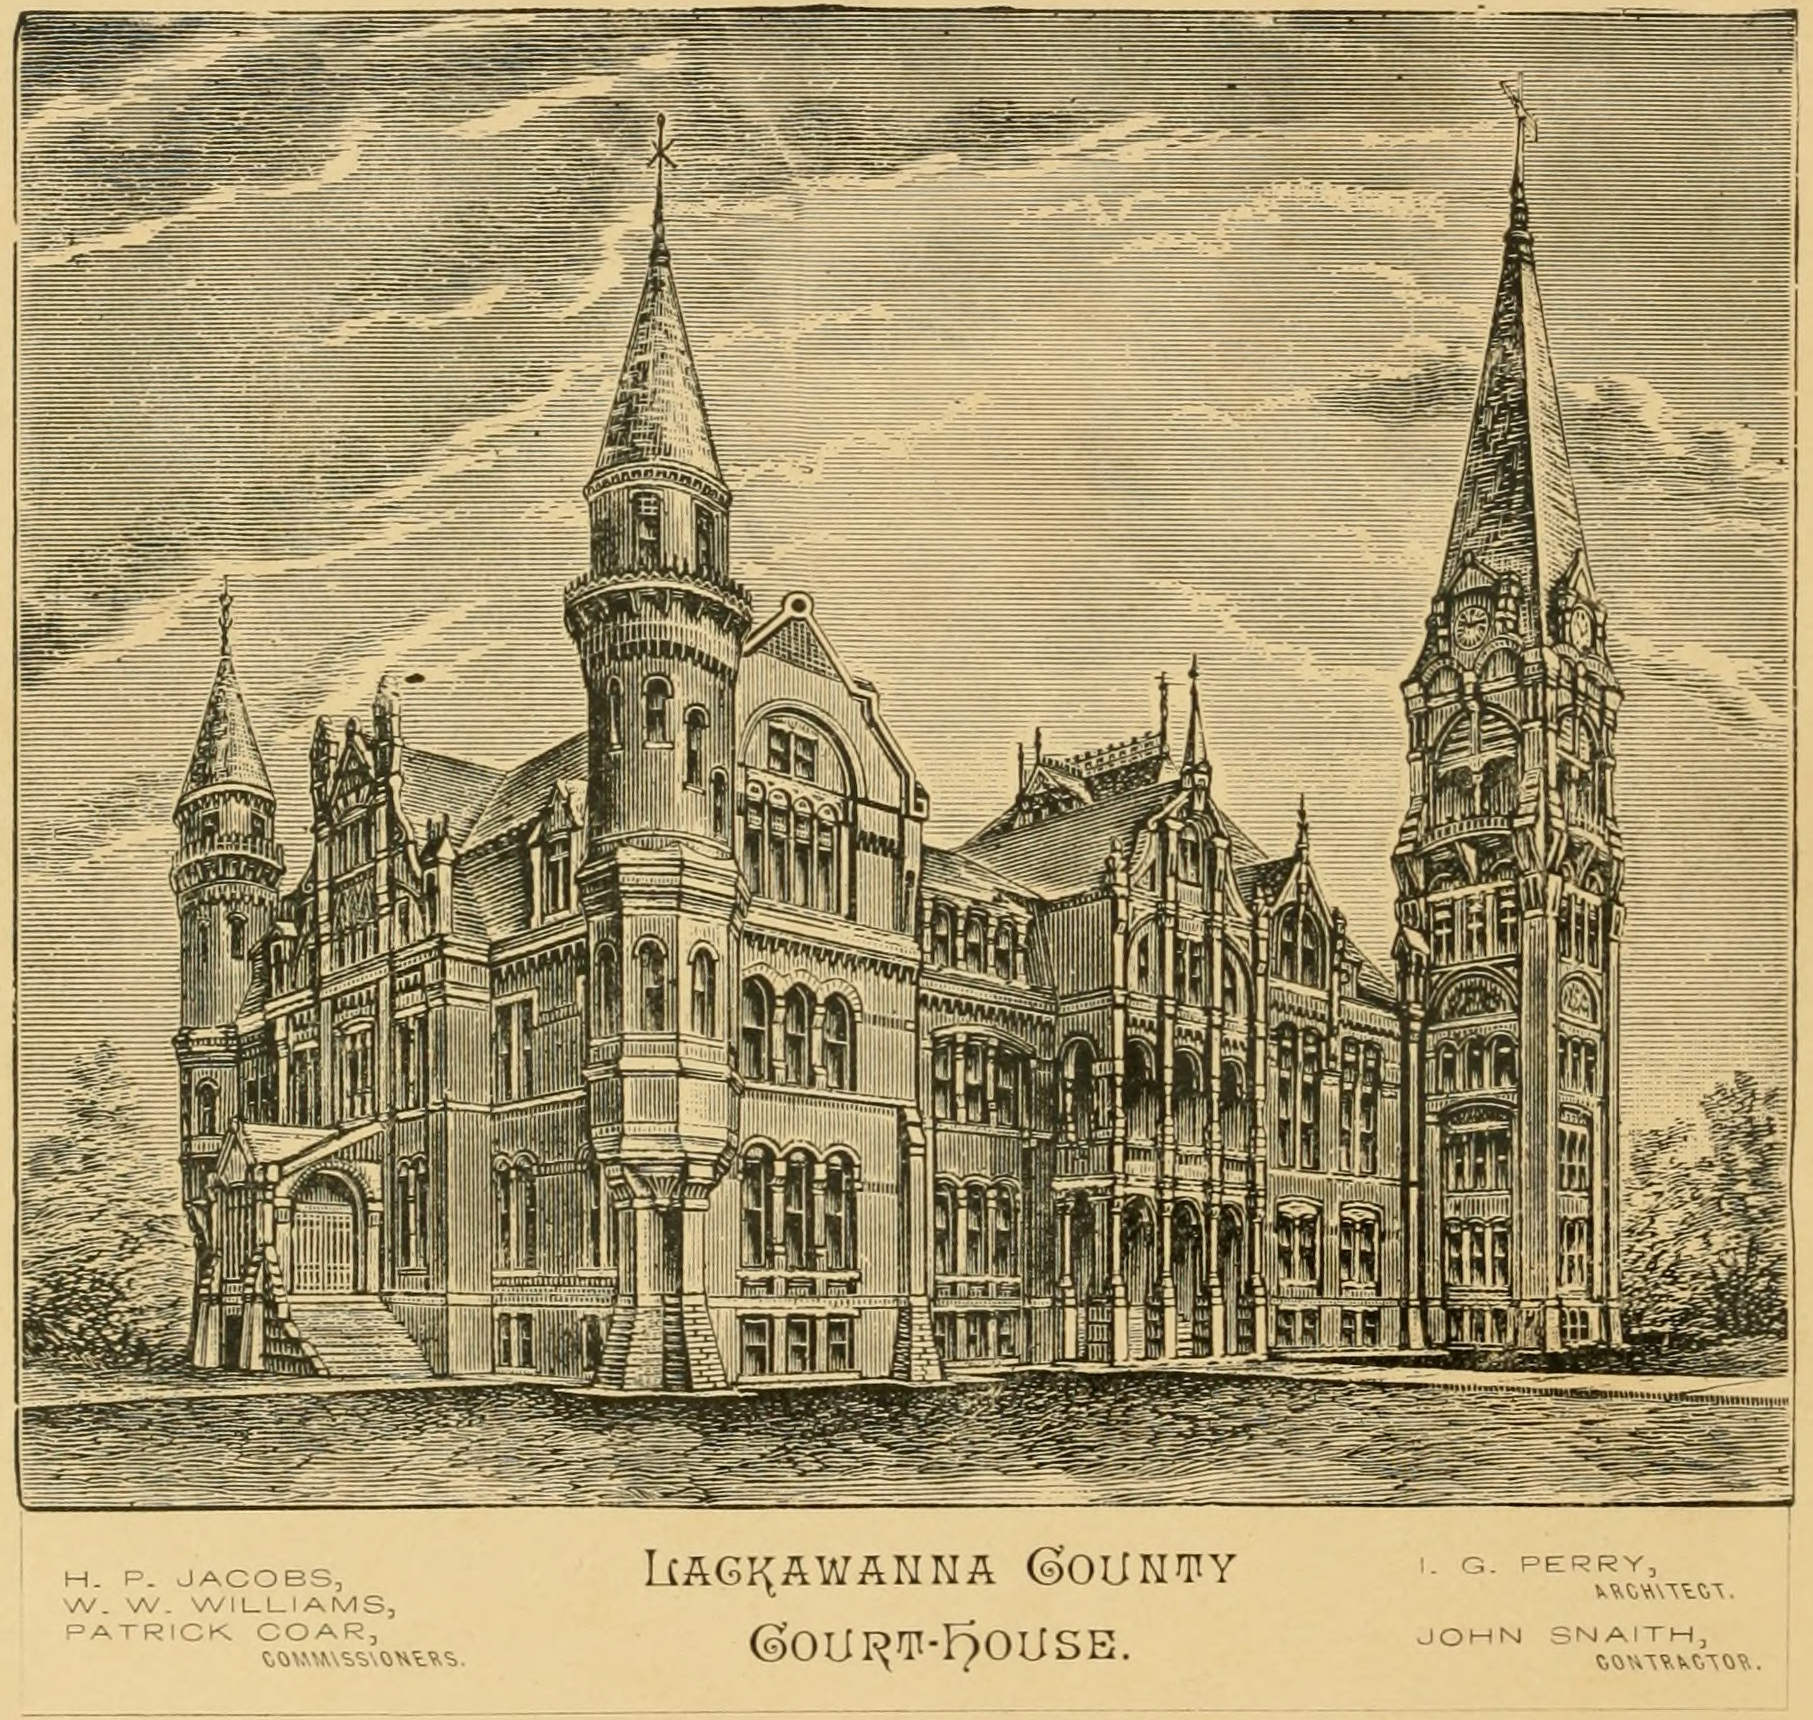 Proposed Lackawanna County Courthouse, 1882